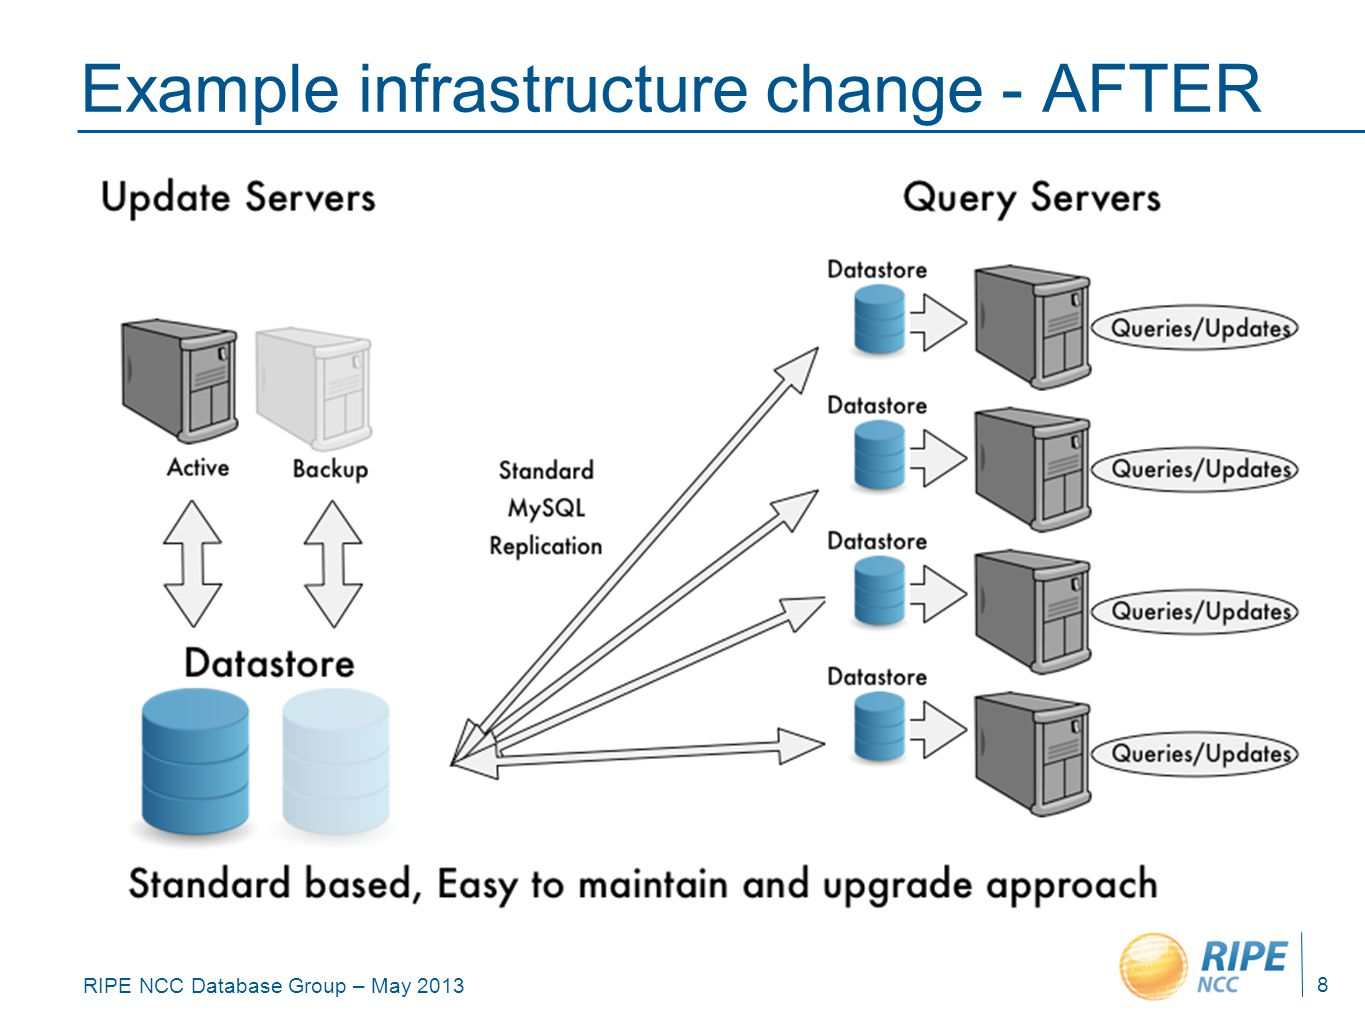 RIPE NCC Database Group – May 2013 Example infrastructure change - AFTER 8